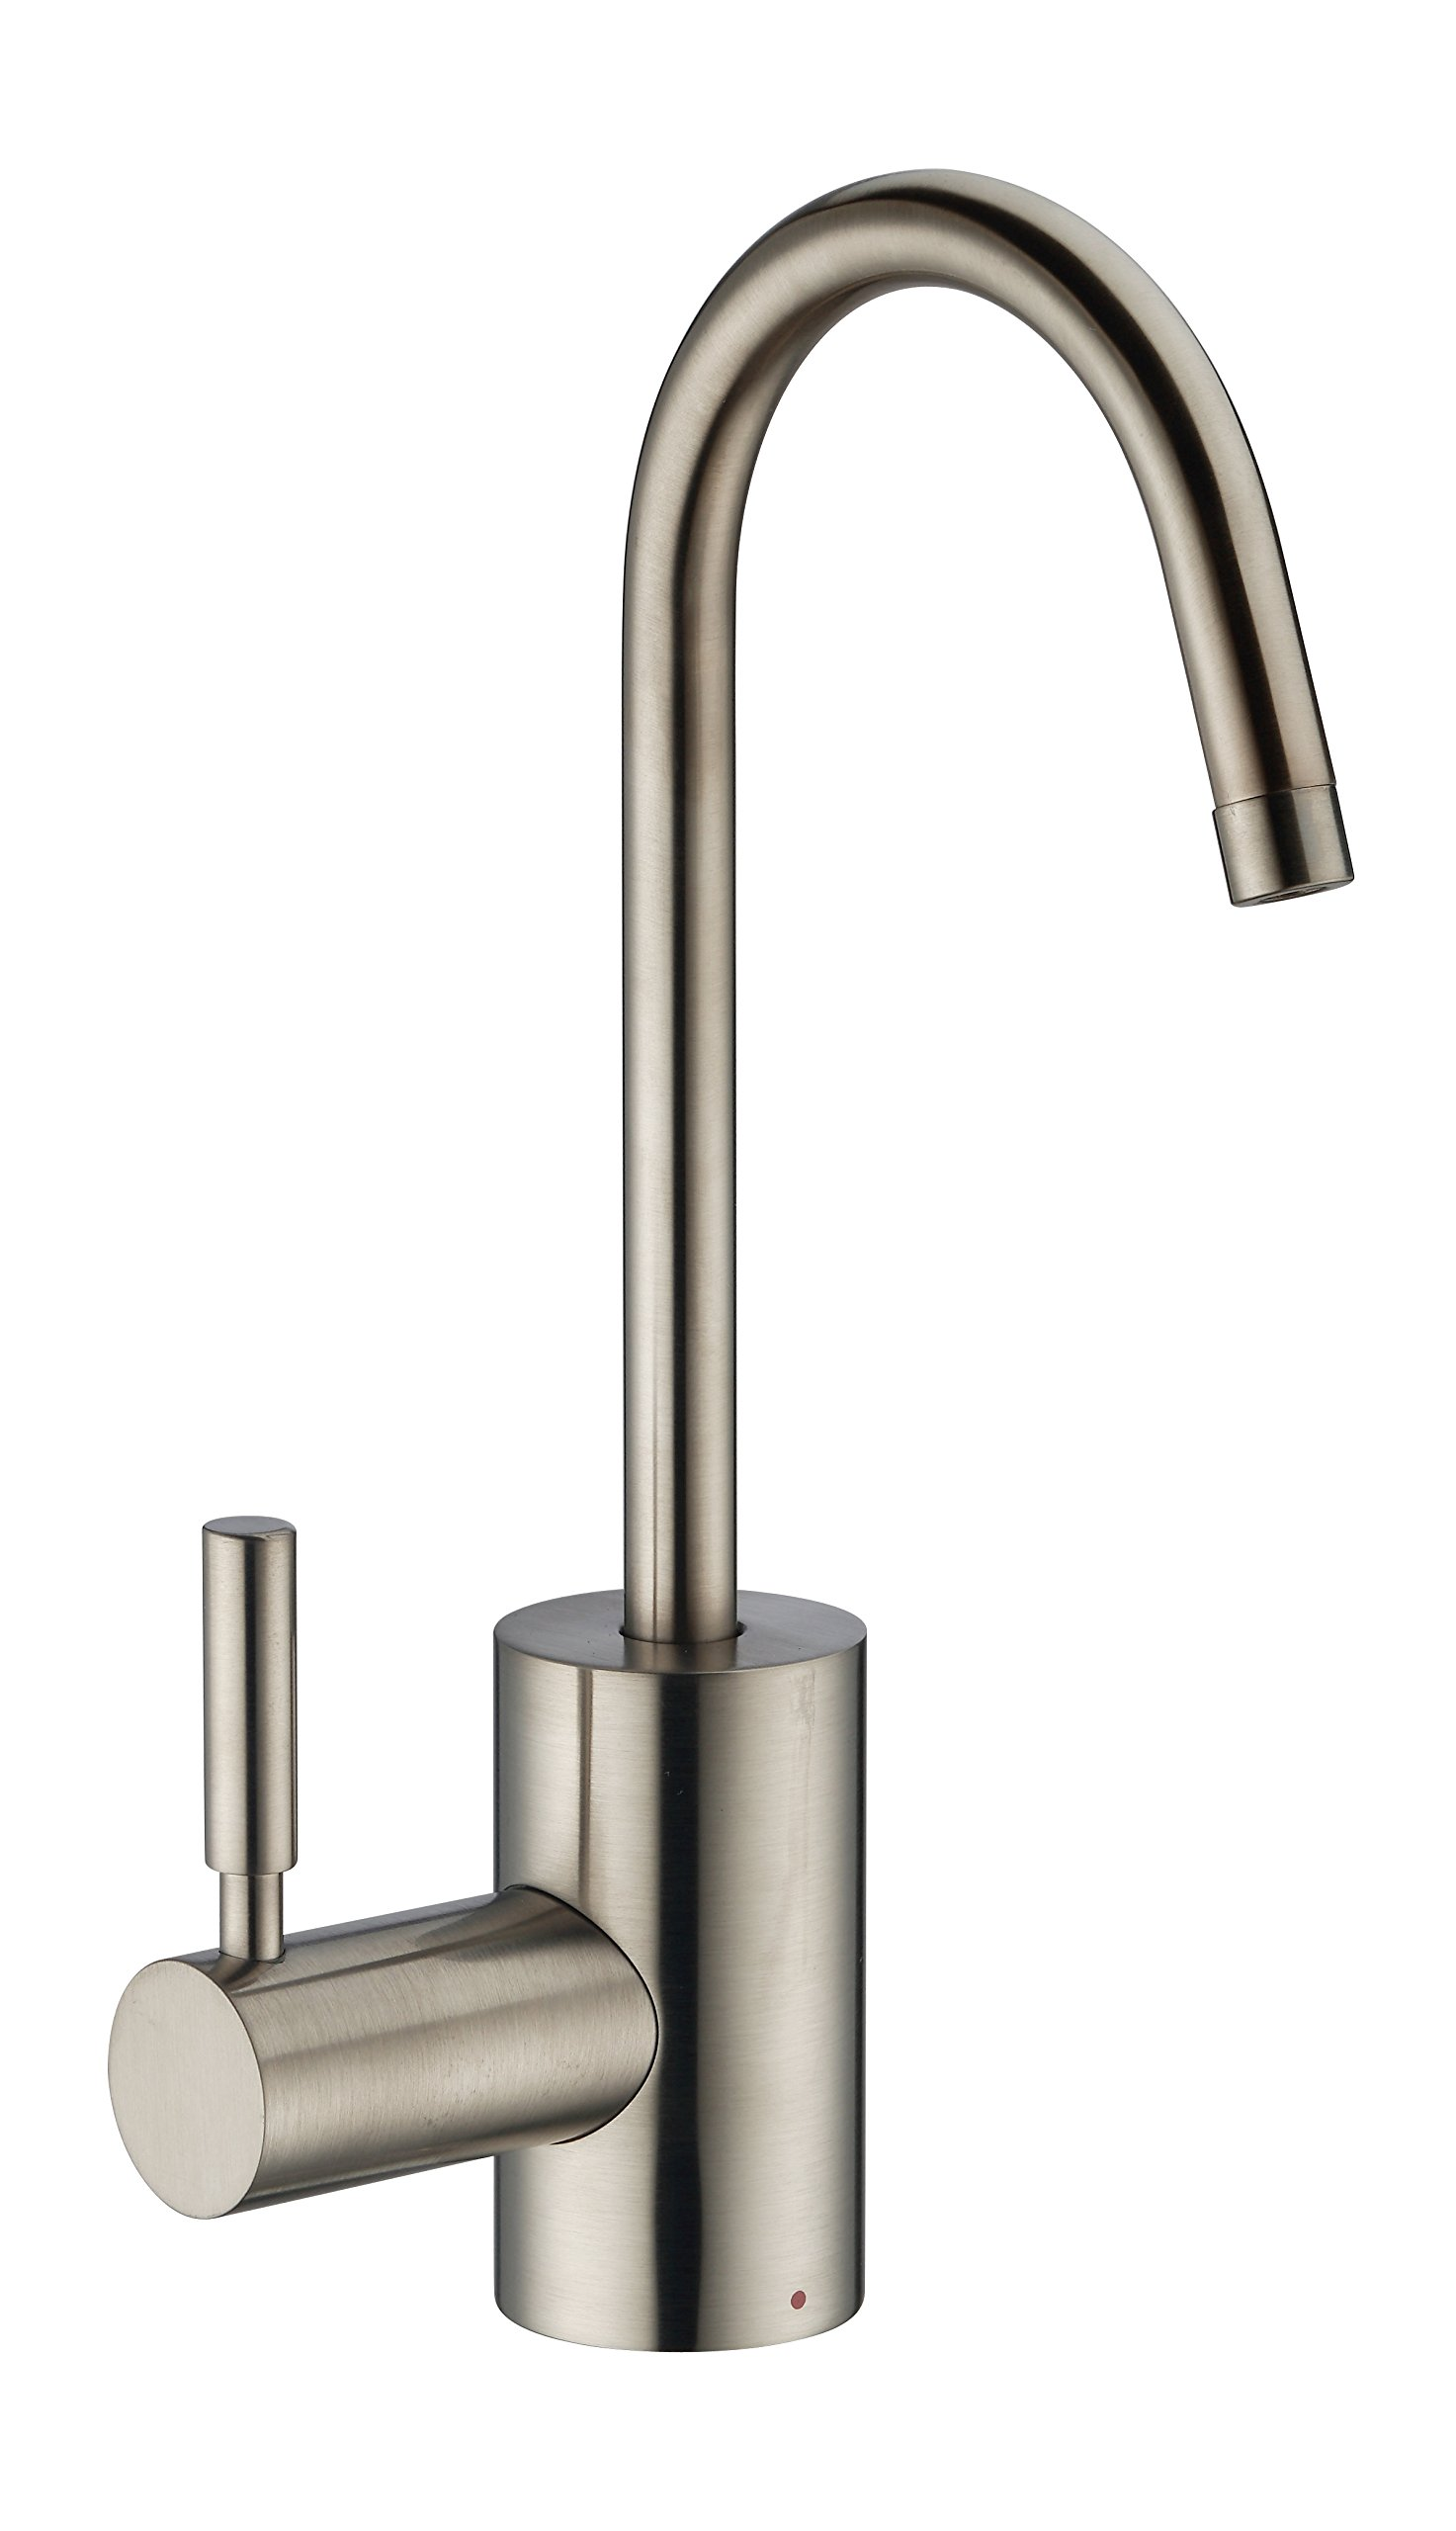 Whitehaus WHFH-H1010-BN Forever Point of Use Instant Hot Water Faucet with Contemporary Spout and Self Closing Handle Brushed Nickel